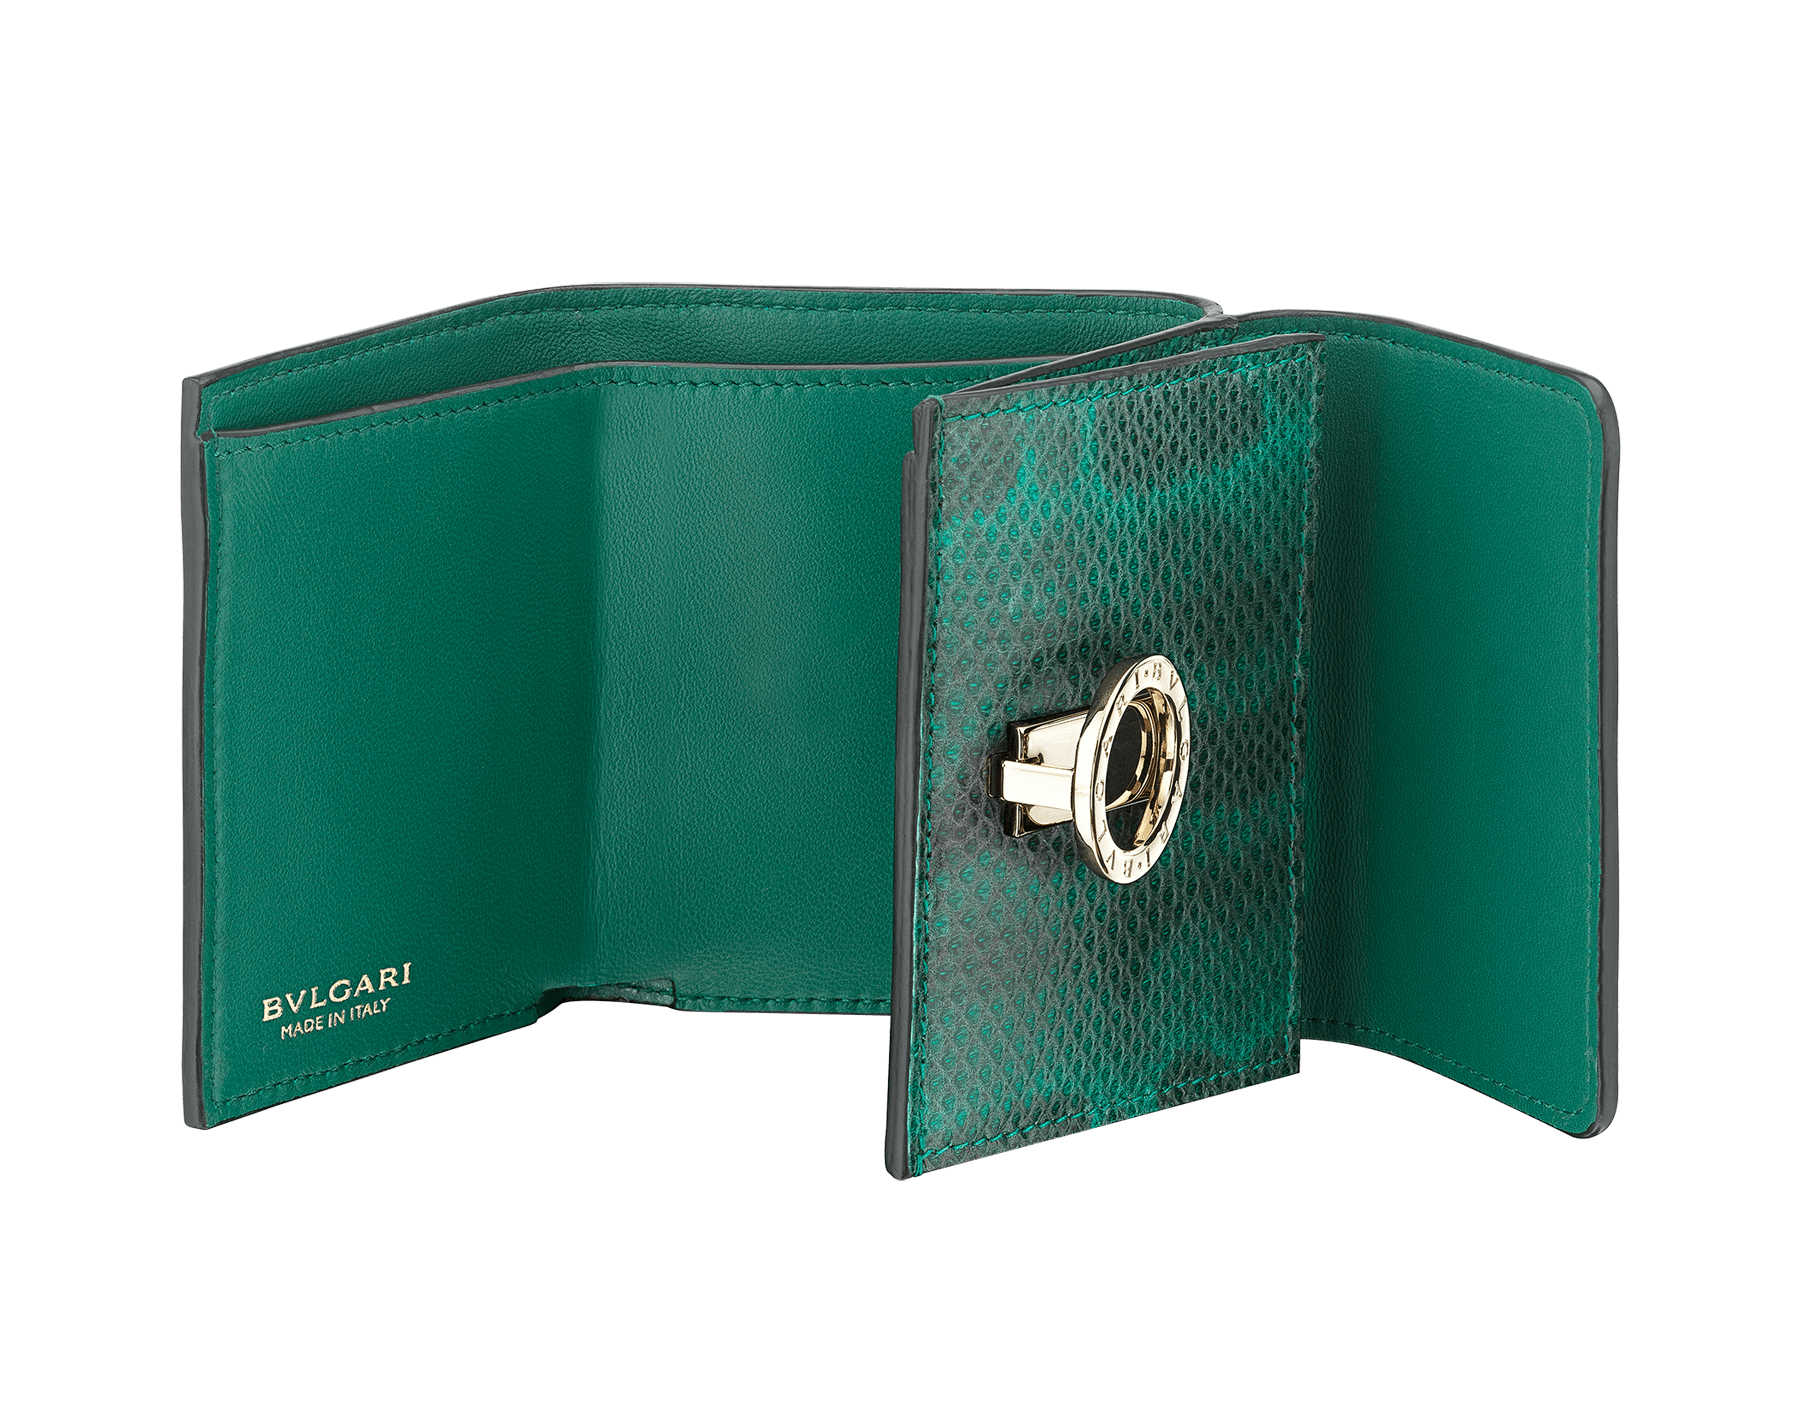 BVLGARI BVLGARI compact wallet in emerald green shiny karung skin and emerald green nappa leather. Iconic logo closure clip in light gold plated brass on the flap and press button closure on the body. 289350 image 2